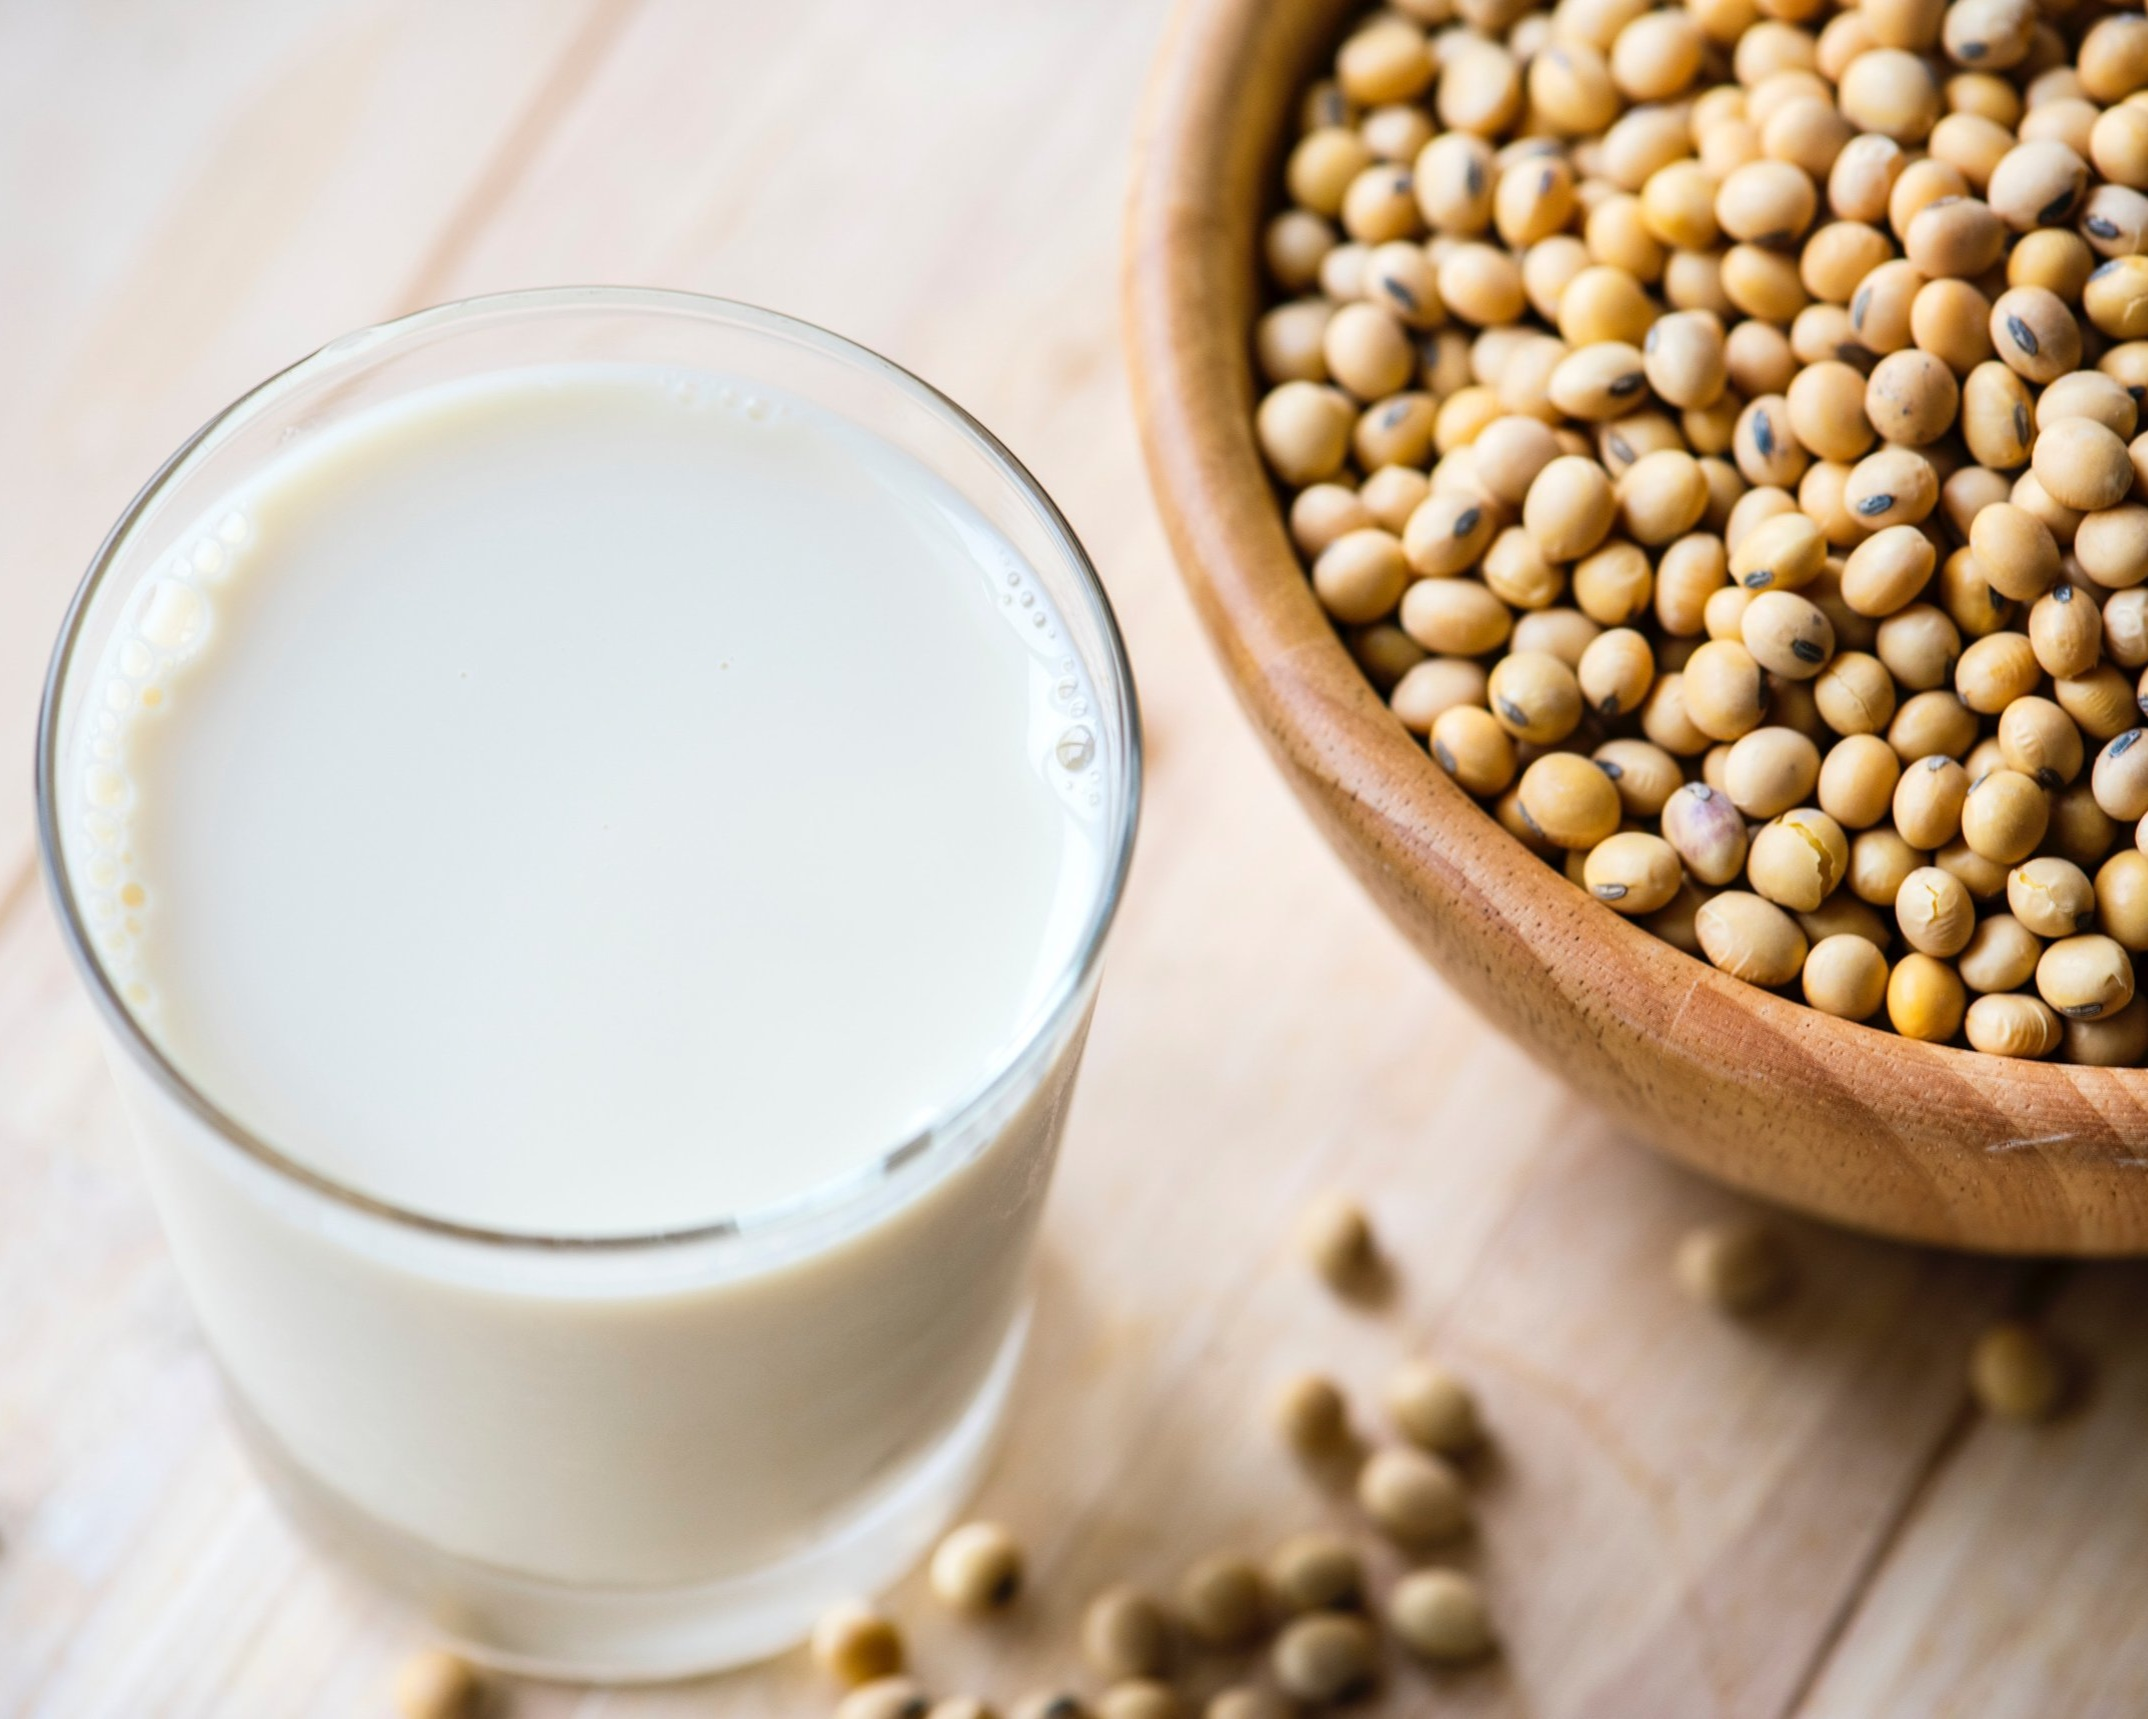 Fun fact : soymilk is said to be invented in China over 2,000 years ago!